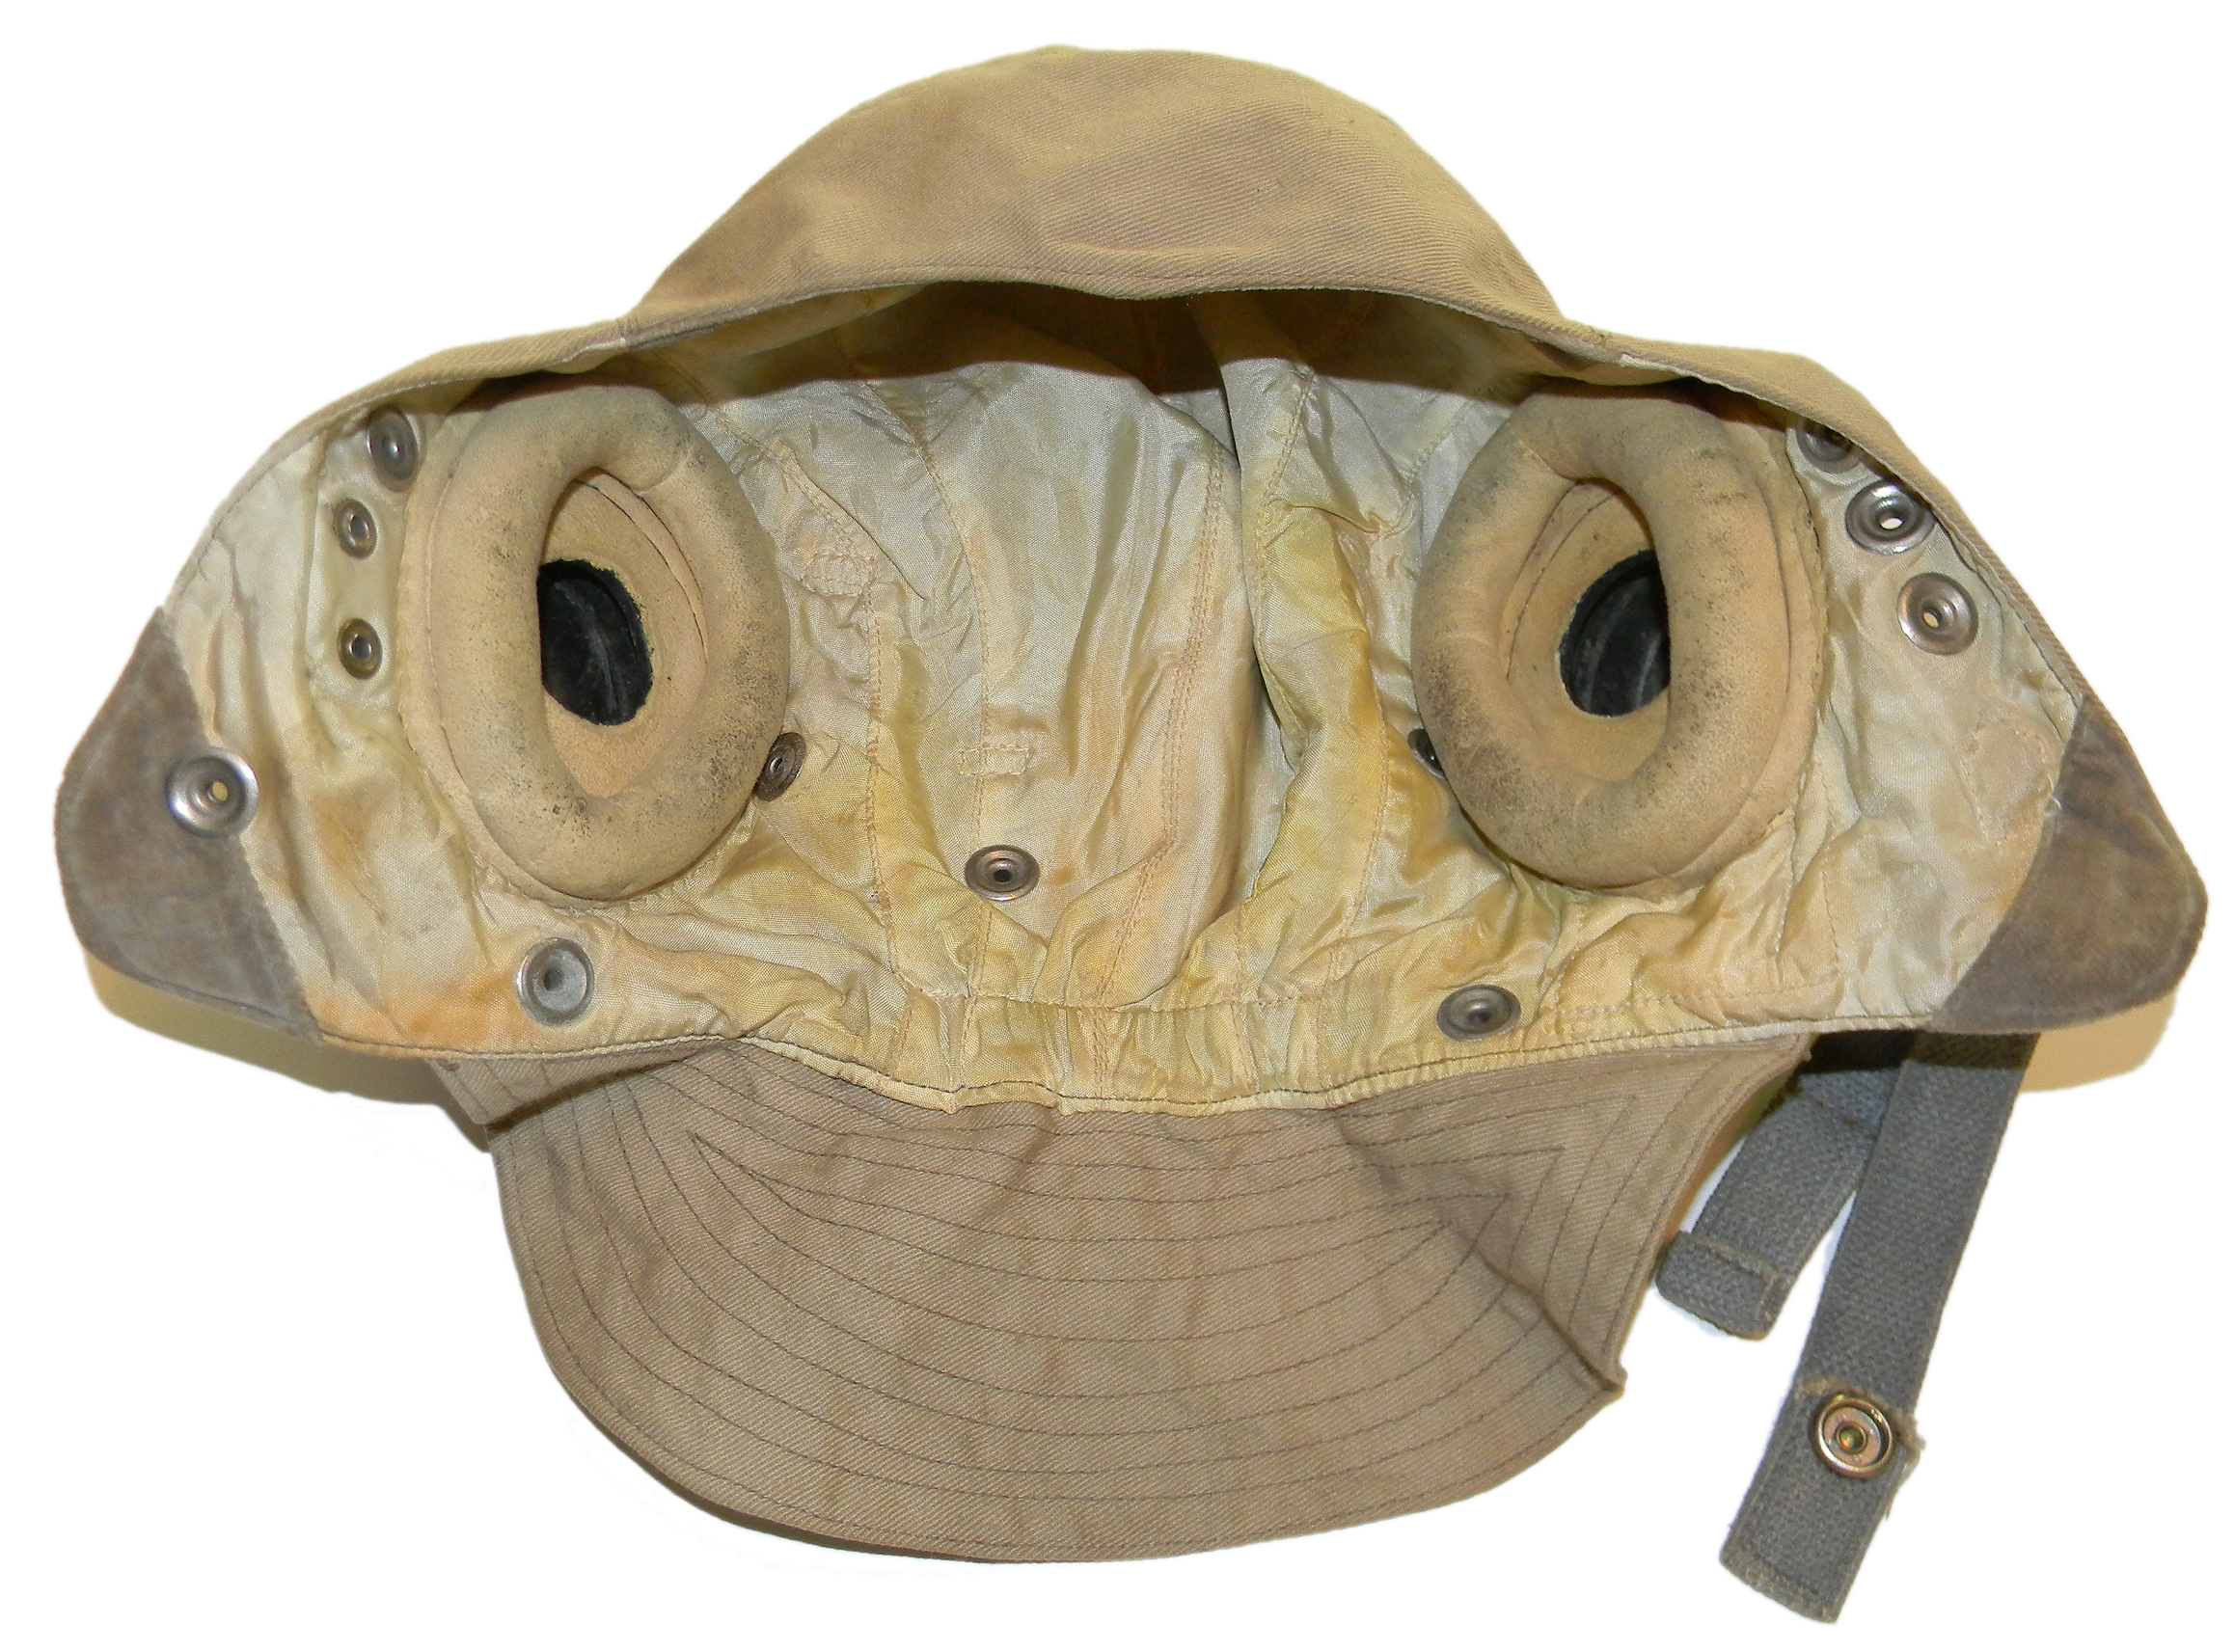 RAF Type D flying helmet